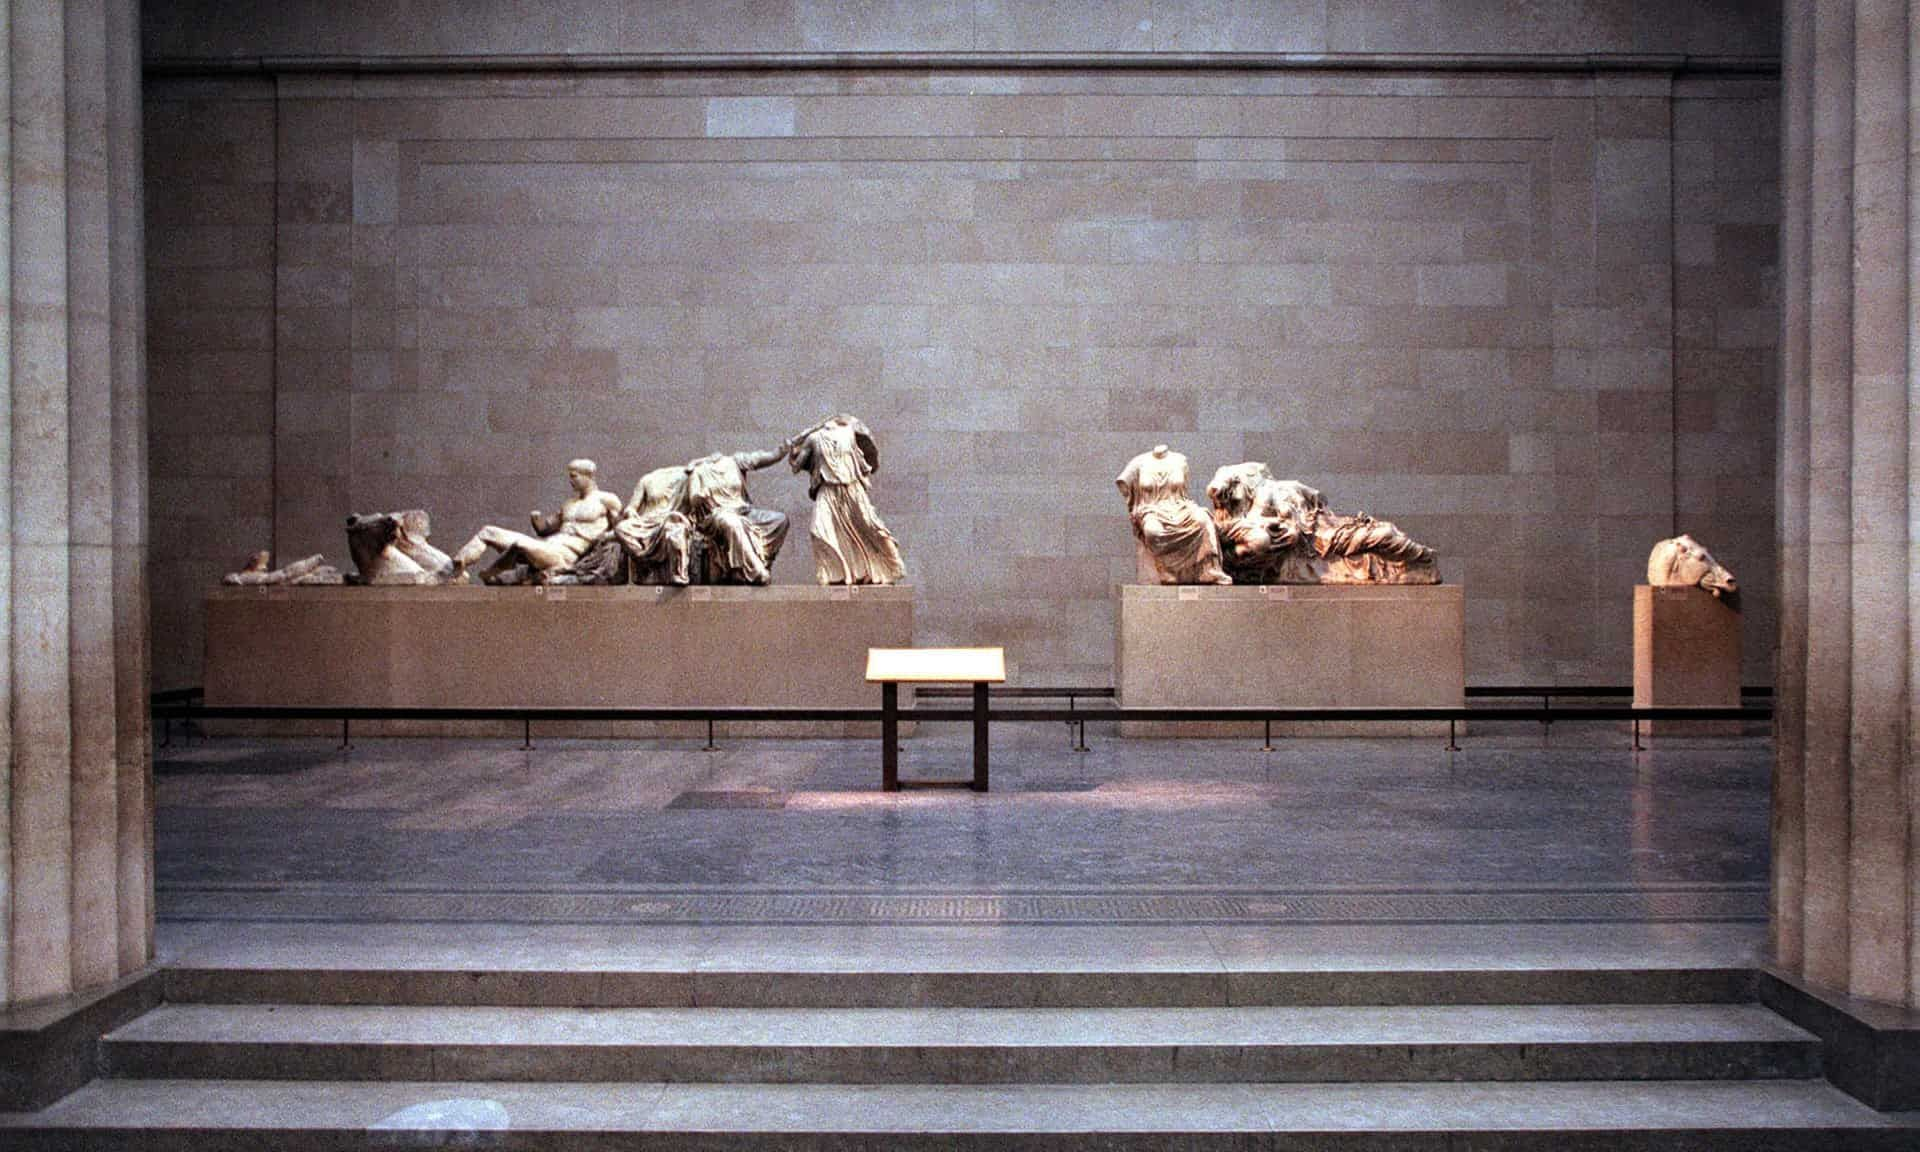 Brexit May Just Hold The Key To Gaining Back The Parthenon Marbles According To The Guardian Columnist Rhiannon Elgin Marbles Greece Parthenon